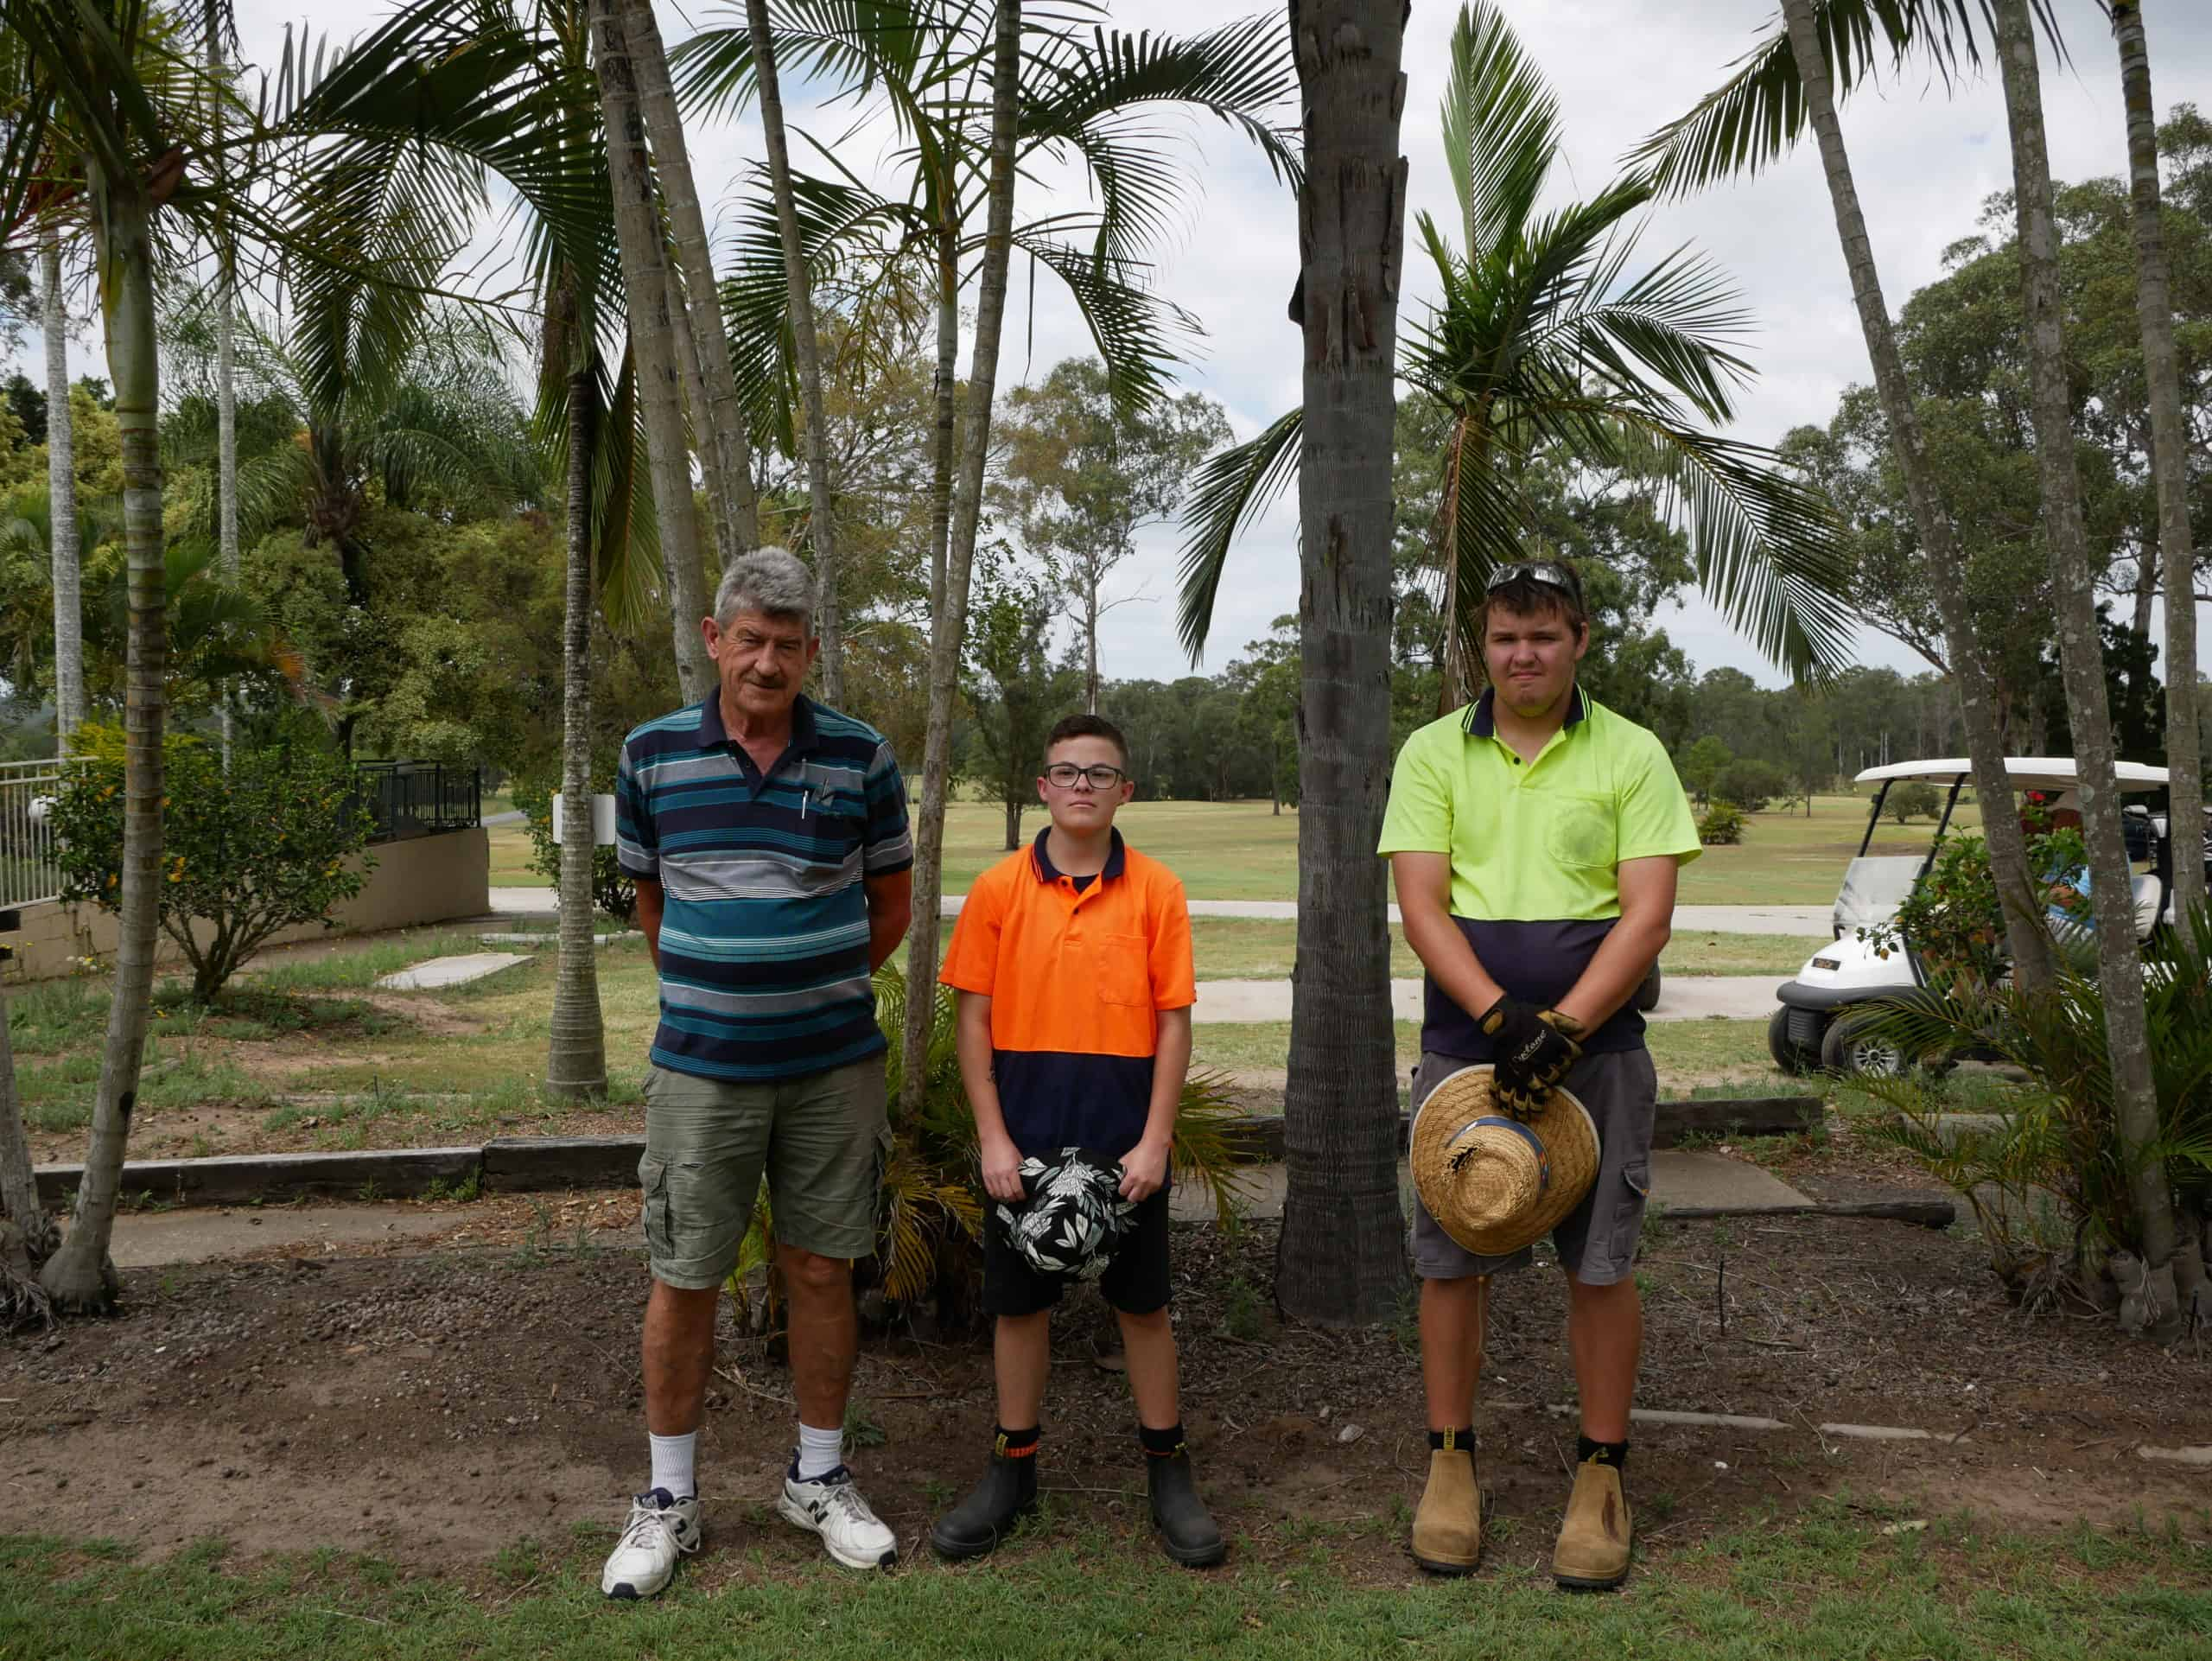 Three men stand in front of palm trees with golf course in the background. One of the men is older and dressed in a polo short and shorts, the other two men are groundskeepers, wearing hi-vis shirts, holding their hats in their hands.